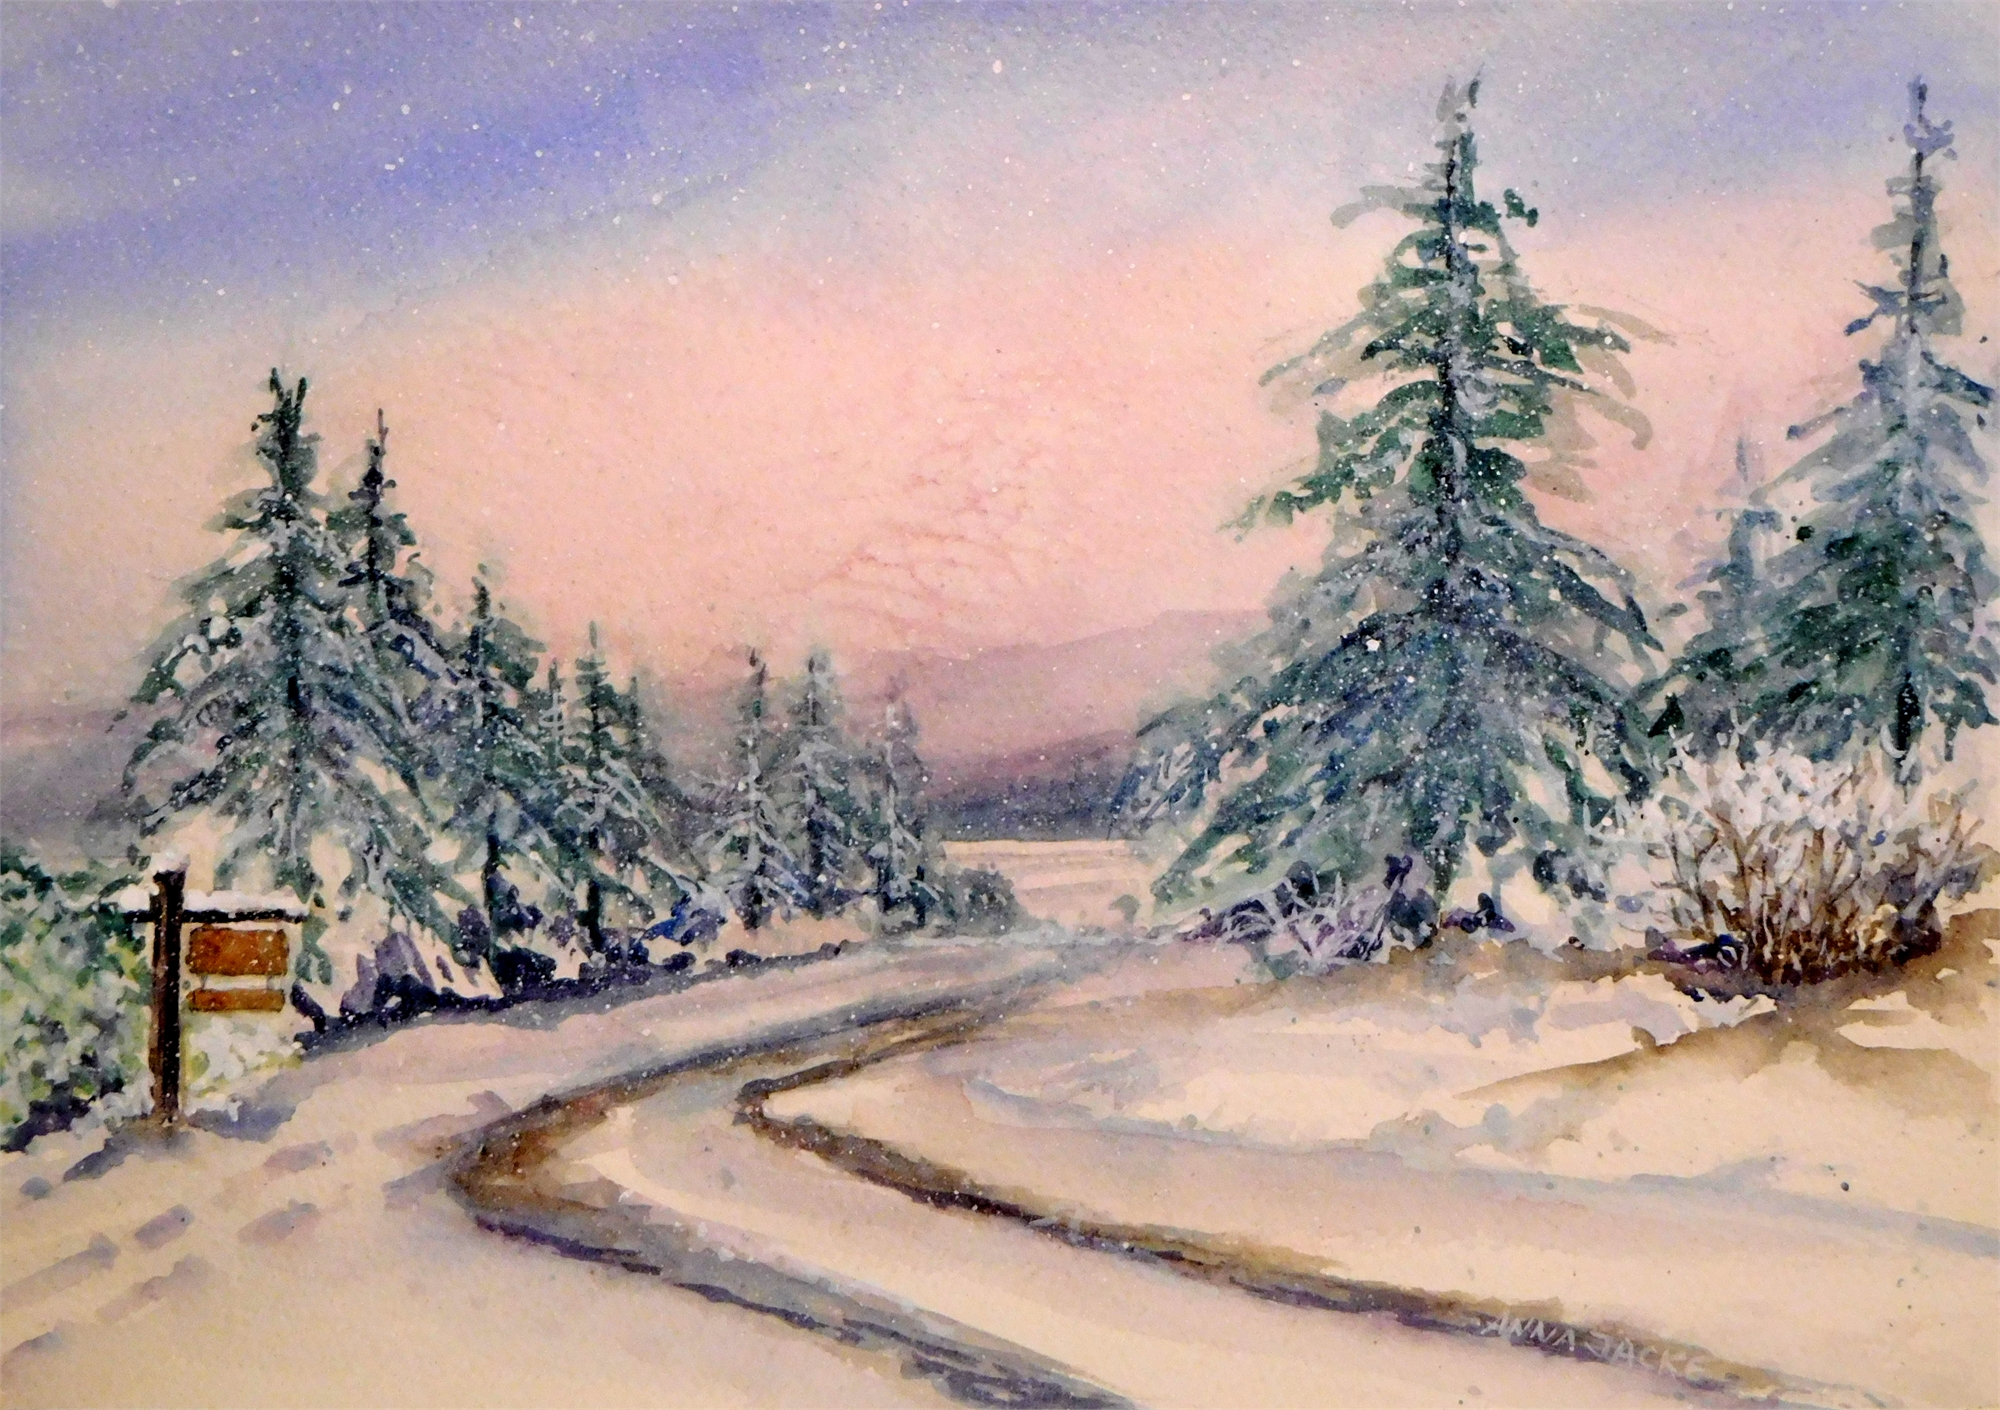 Twilight Snow by Anna Jacke (McMinnville, OR)